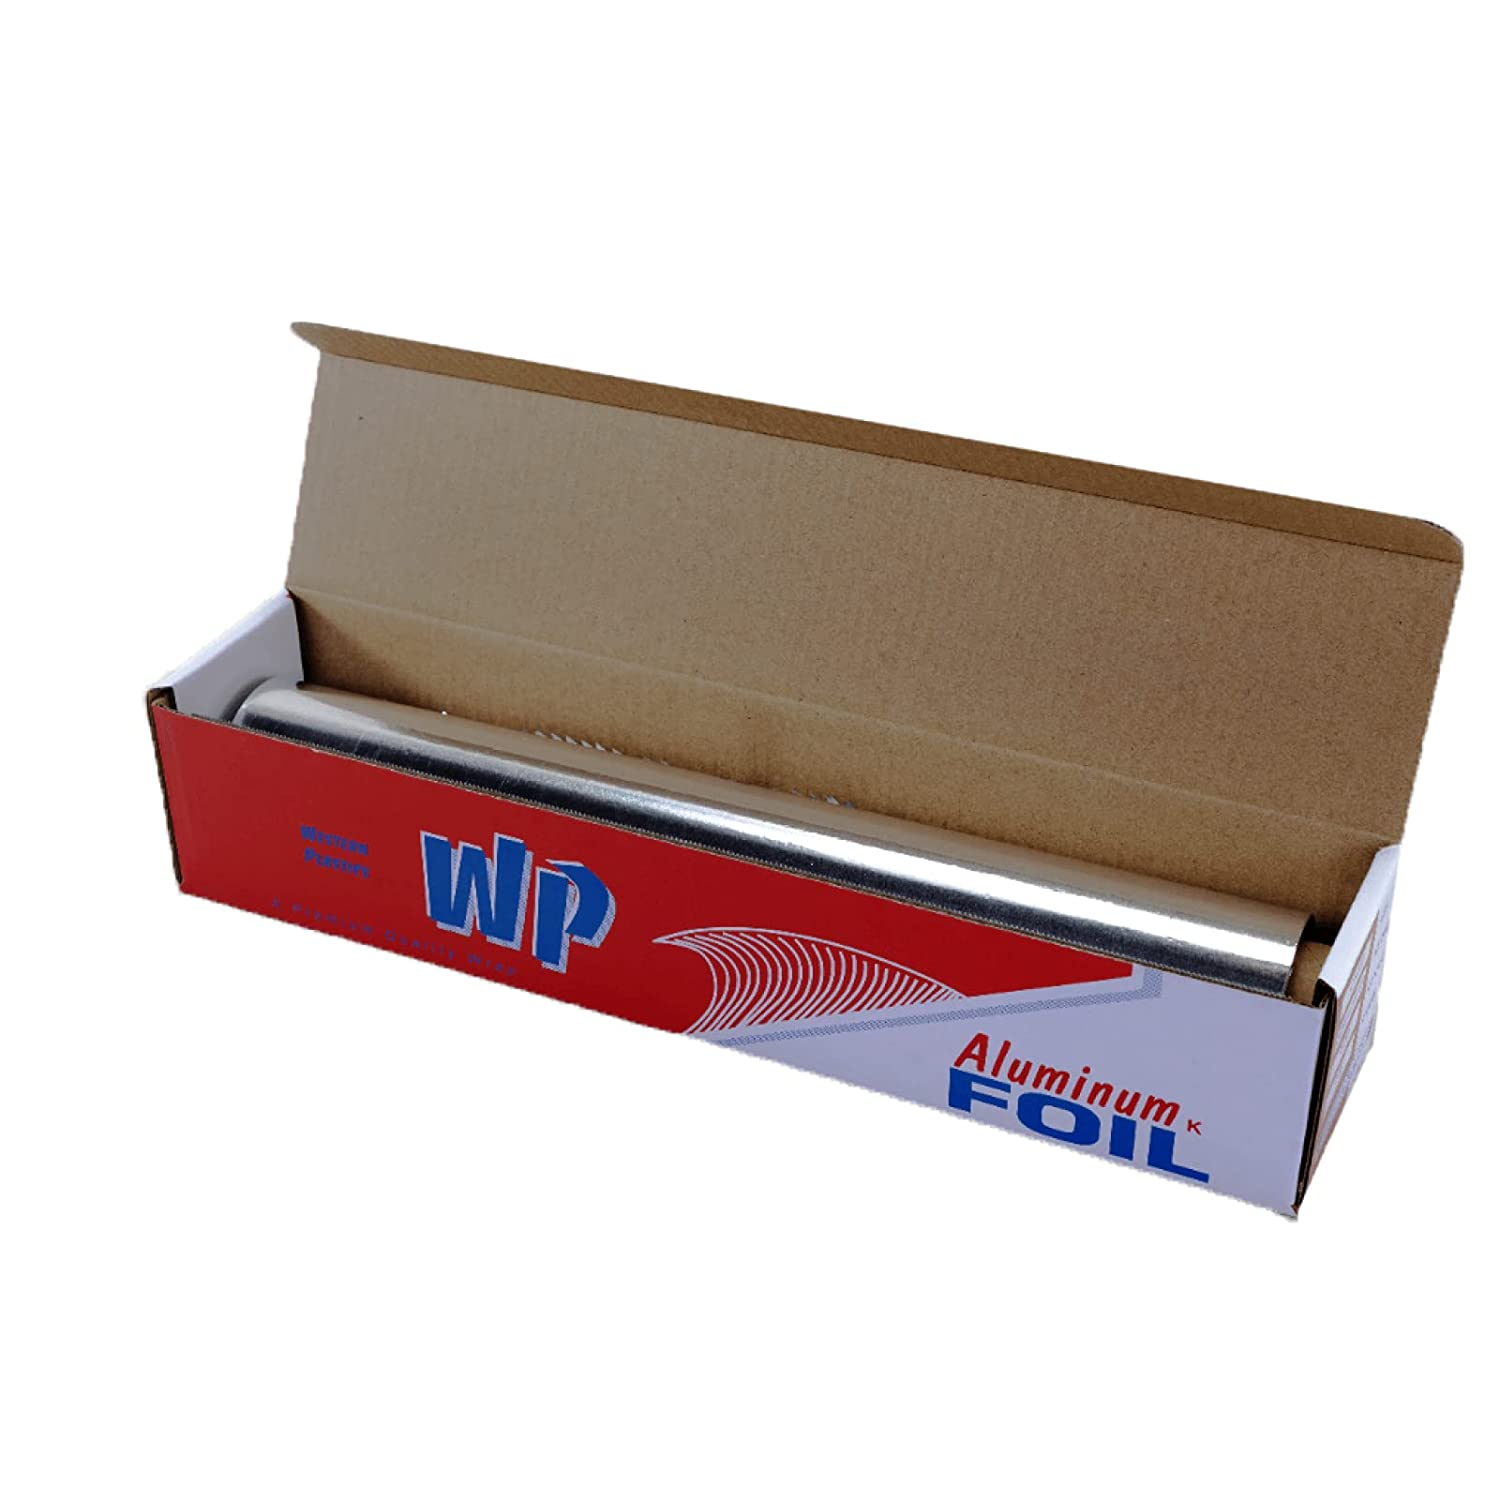 IDL Packaging Max 52% OFF 12